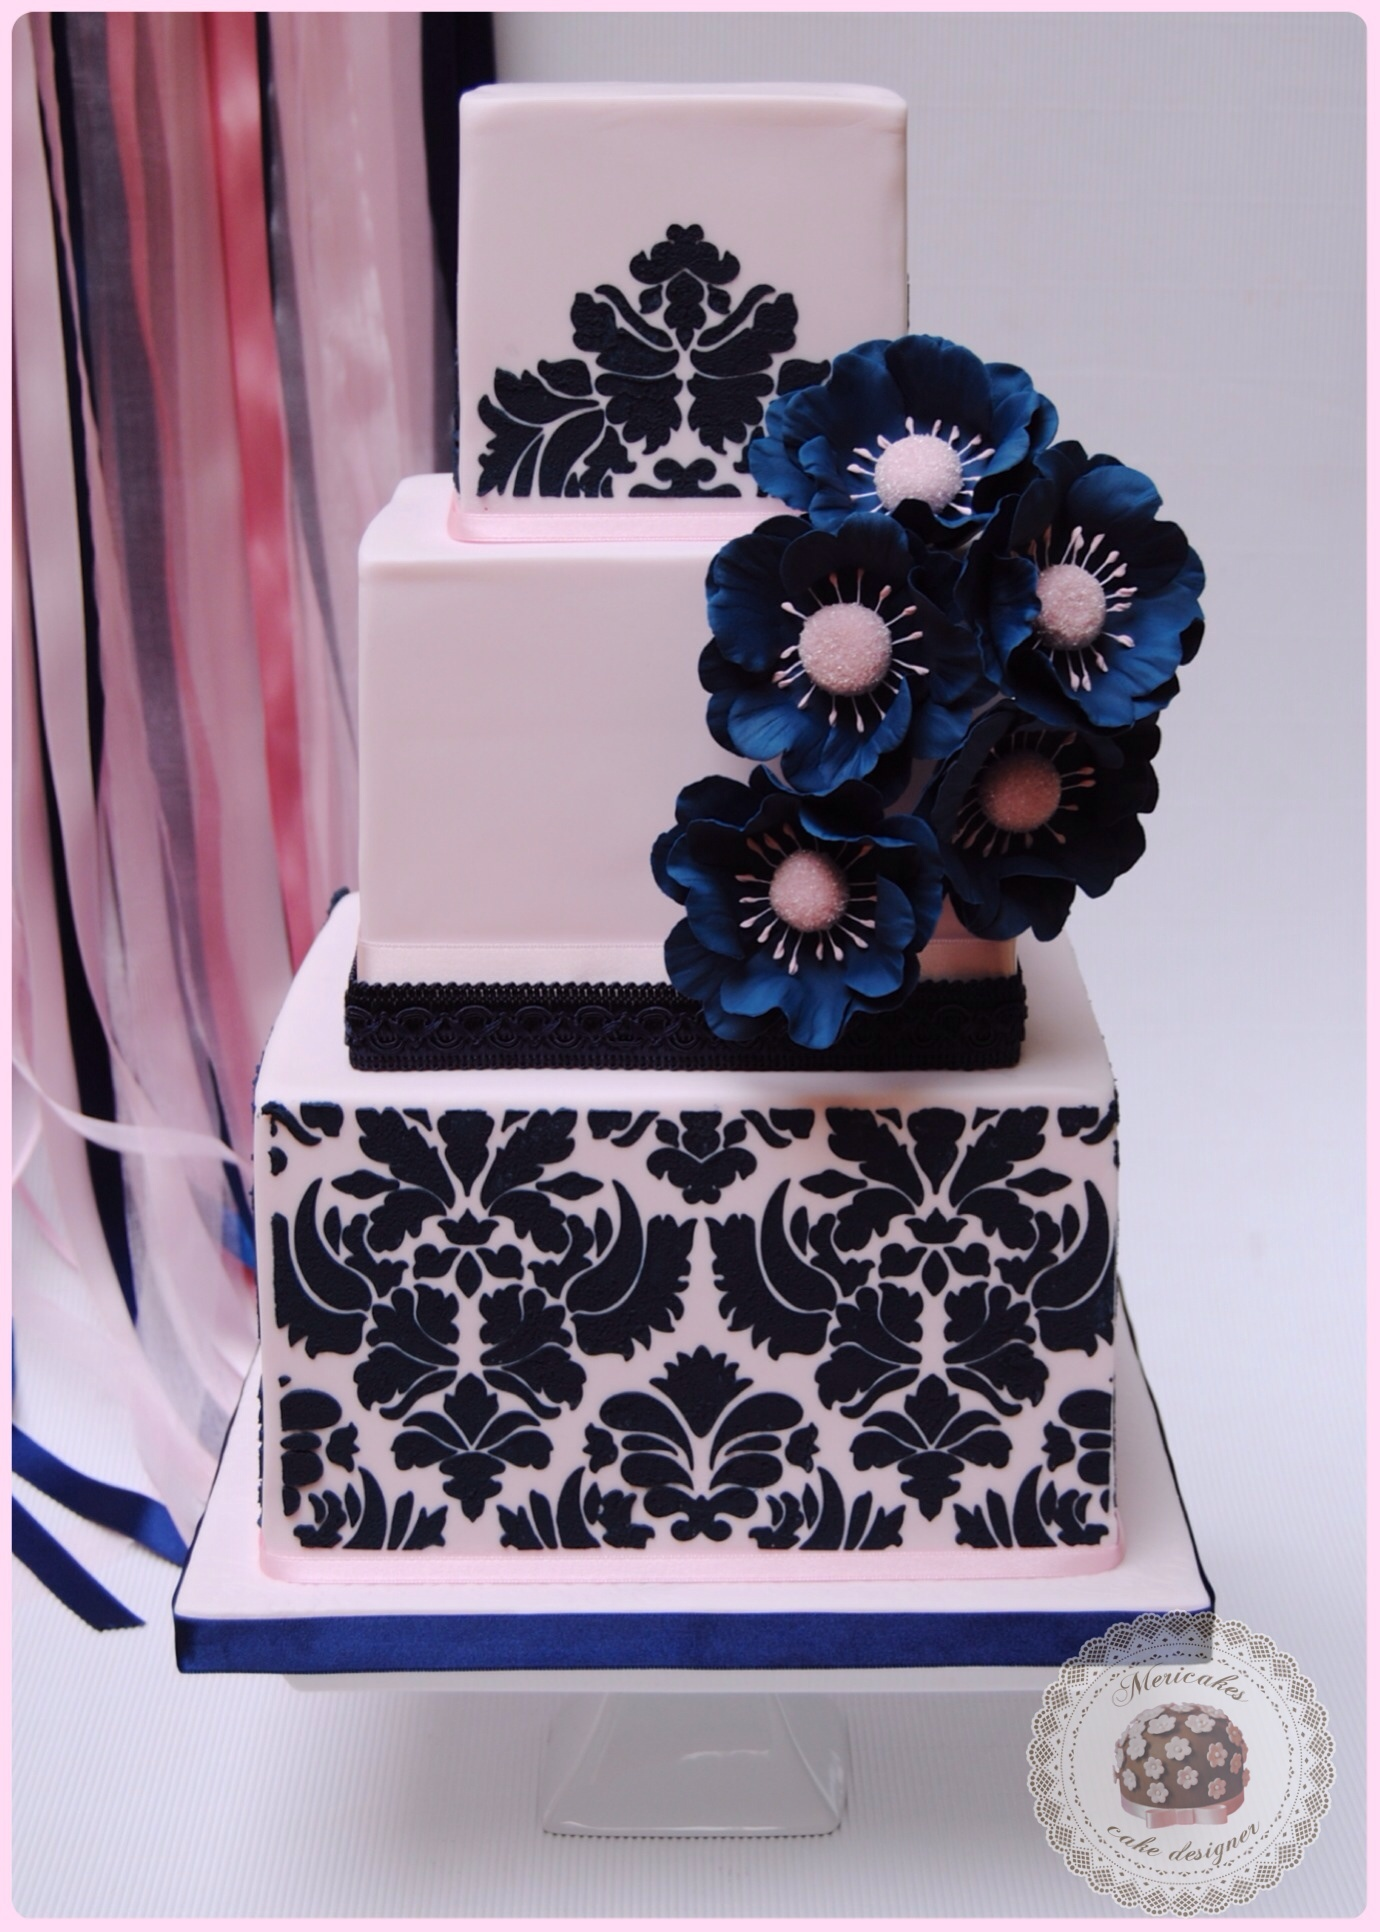 White fondant cake with navy blue sugar flowers